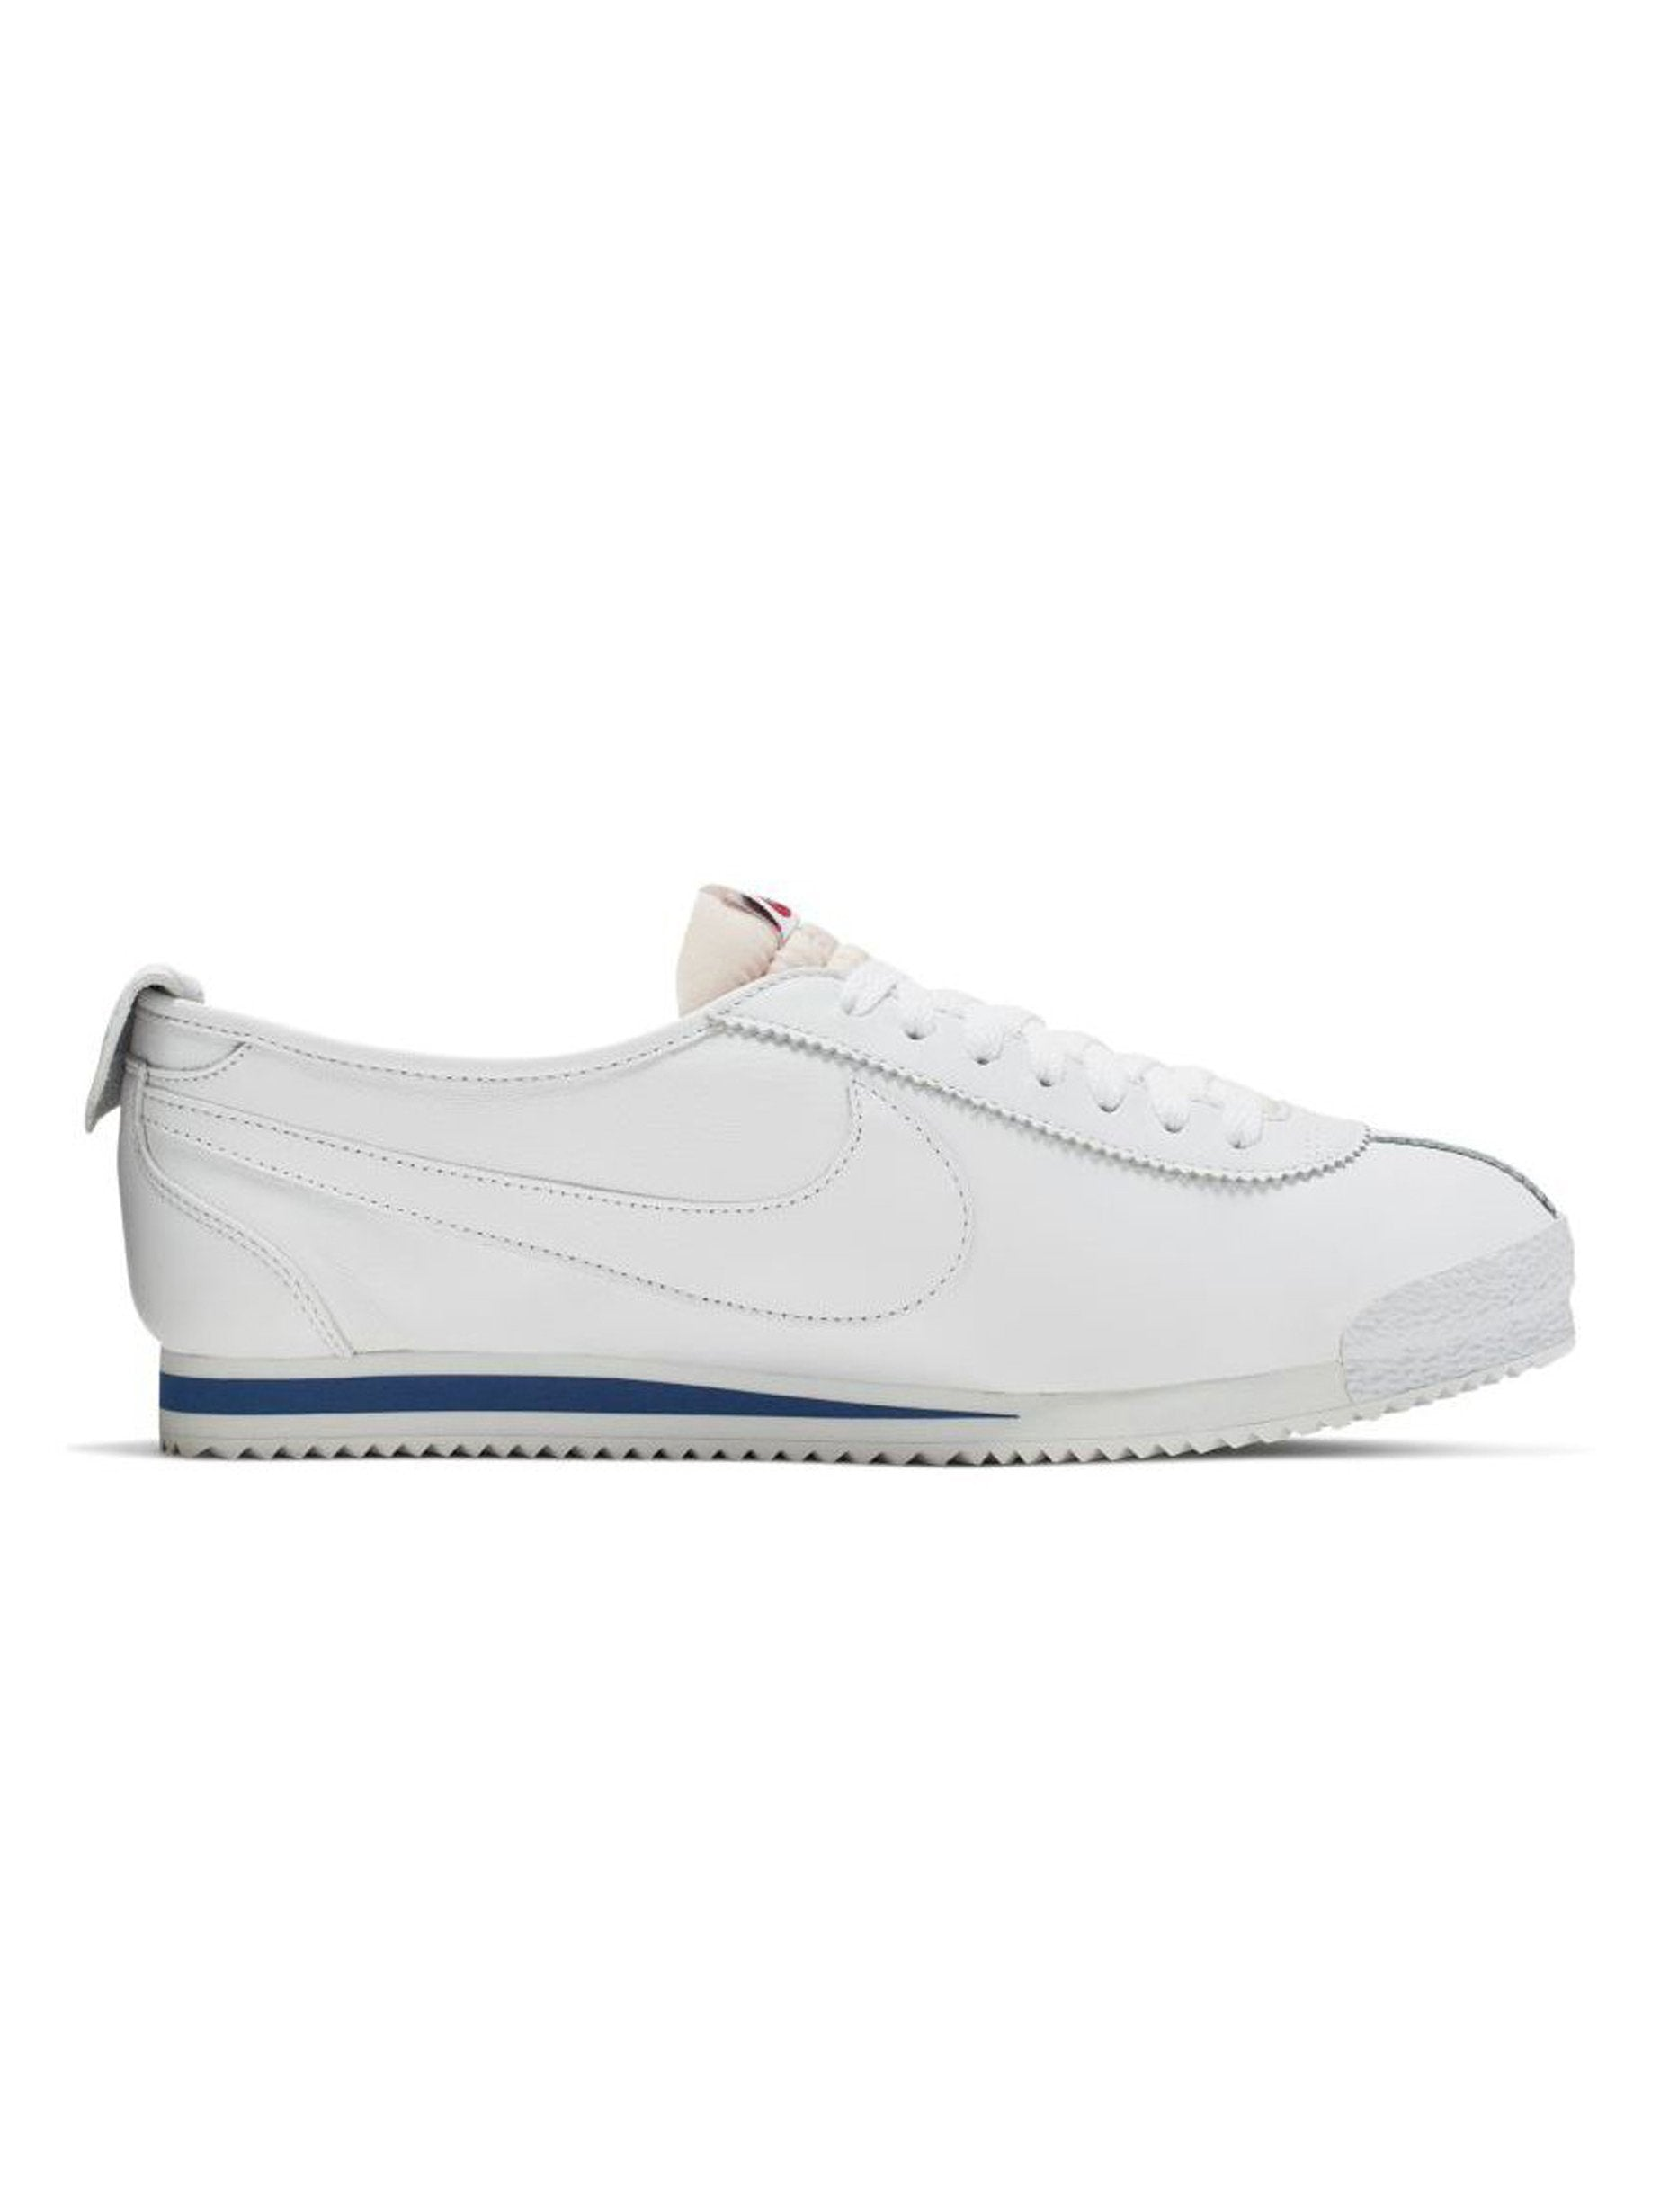 White / Varsity Red/ Game Royal Nike Cortez '72 Shoedog Q (Swoosh) 3